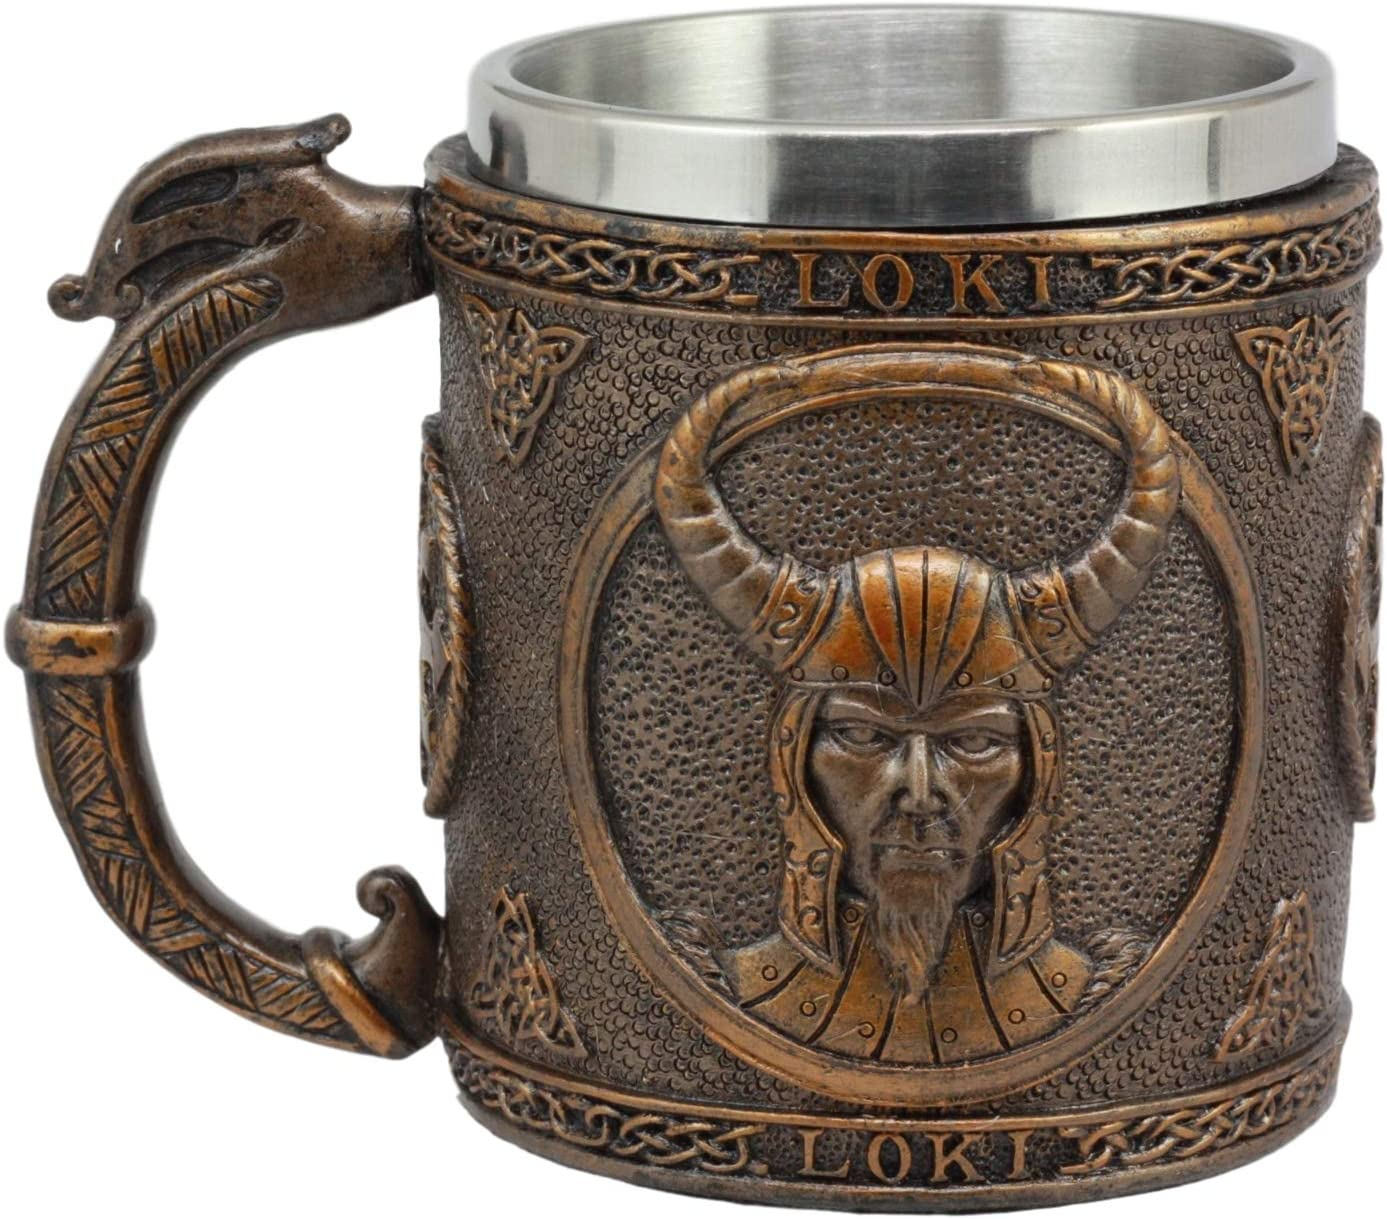 Ebros Gift Norse Mythology Viking Trickster God Loki Coffee Mug 13oz Resin Drink Cup Tankard Beer Stein With Stainless Steel Liner For Kitchen Home Decor Medieval Renaissance Party Hosting Accessory